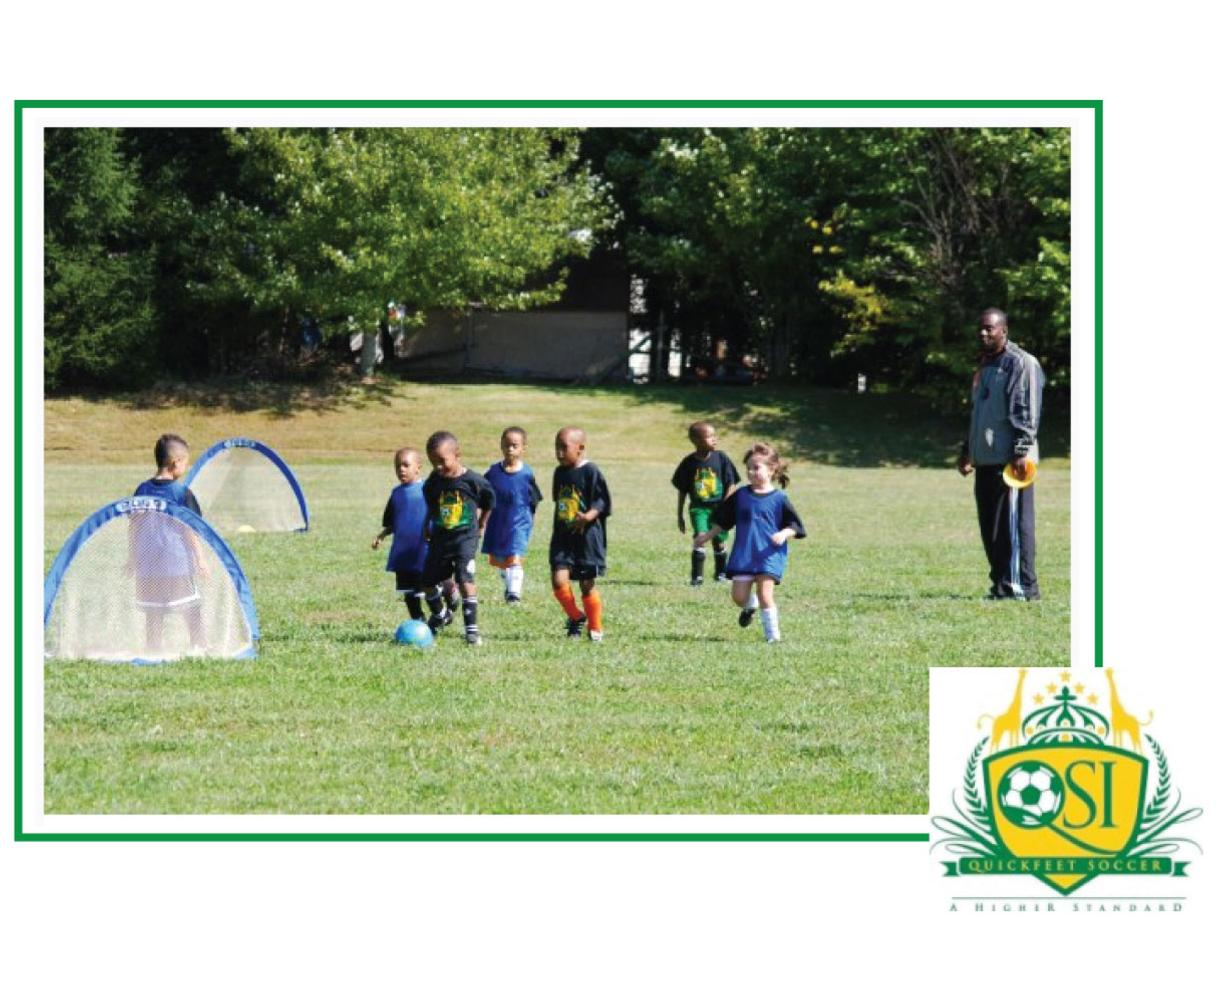 $91 for 7 Quickfeet FALL Soccer Sessions for Ages 2-6 - MD, DC & VA Locations! ($139 Value - 35% Off)